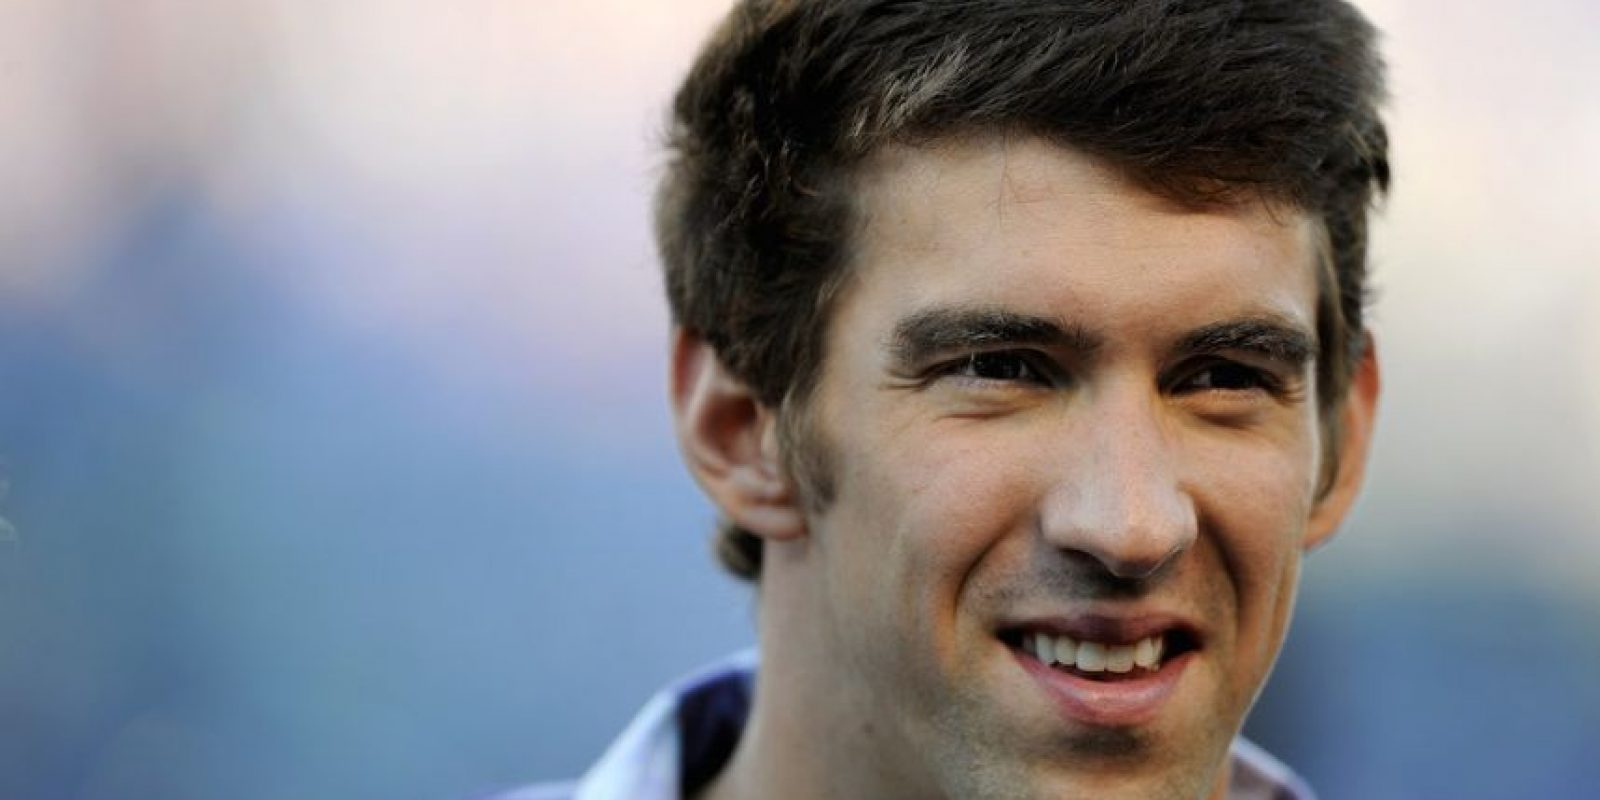 El nadador estadounidense Michael Phelps. Foto: Getty Images